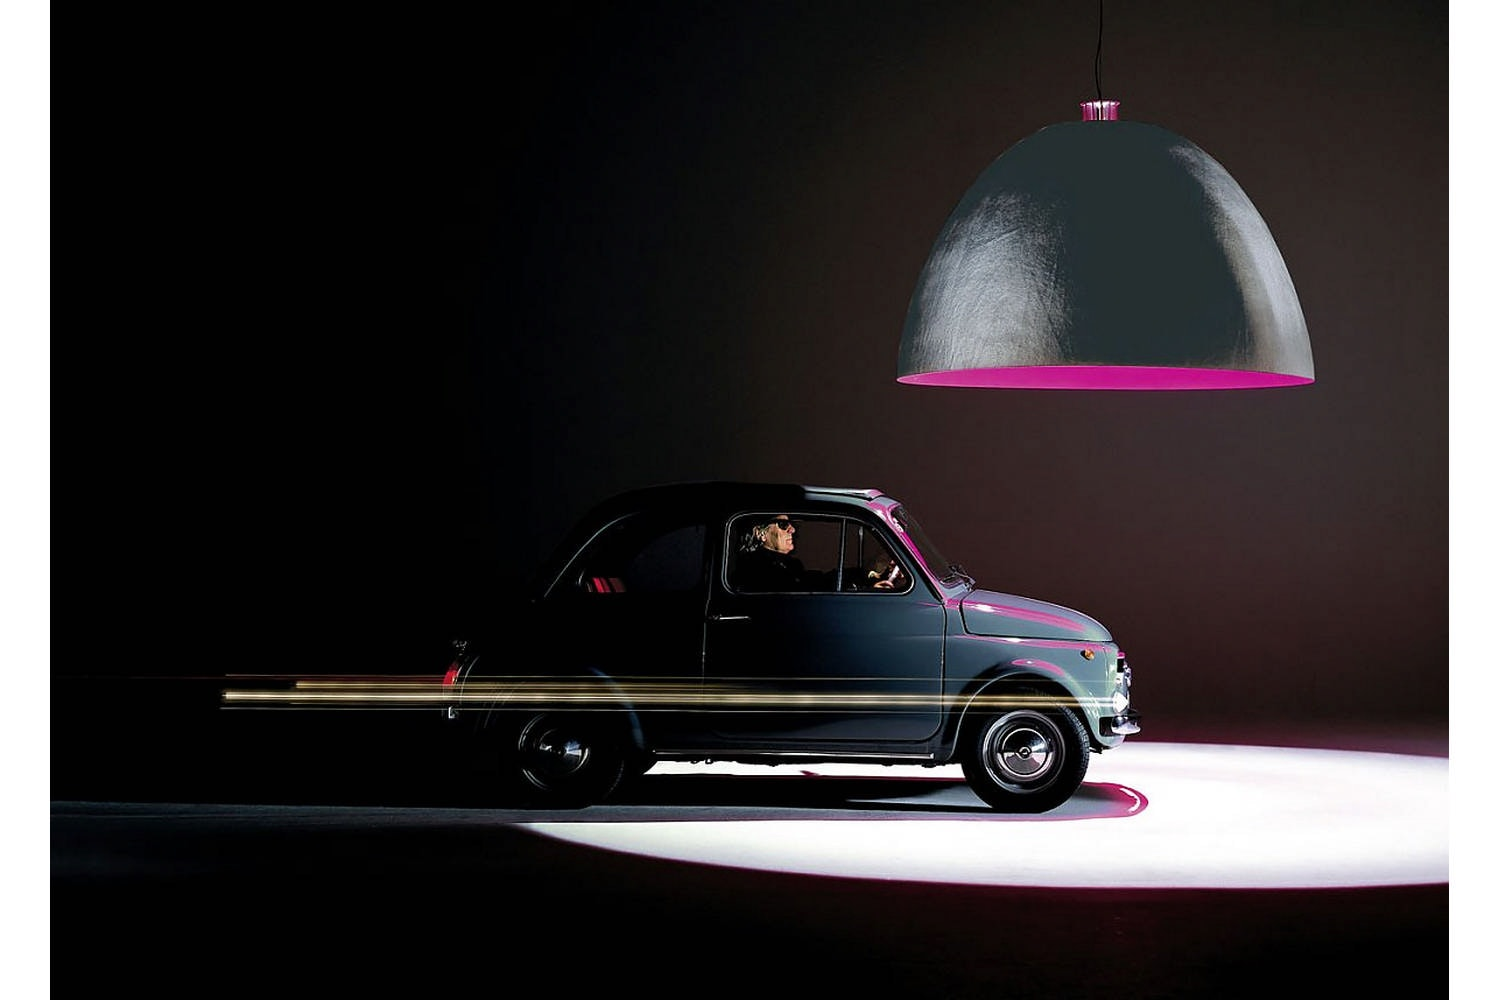 XXL Dome Suspension Lamp by Ingo Maurer for Ingo Maurer